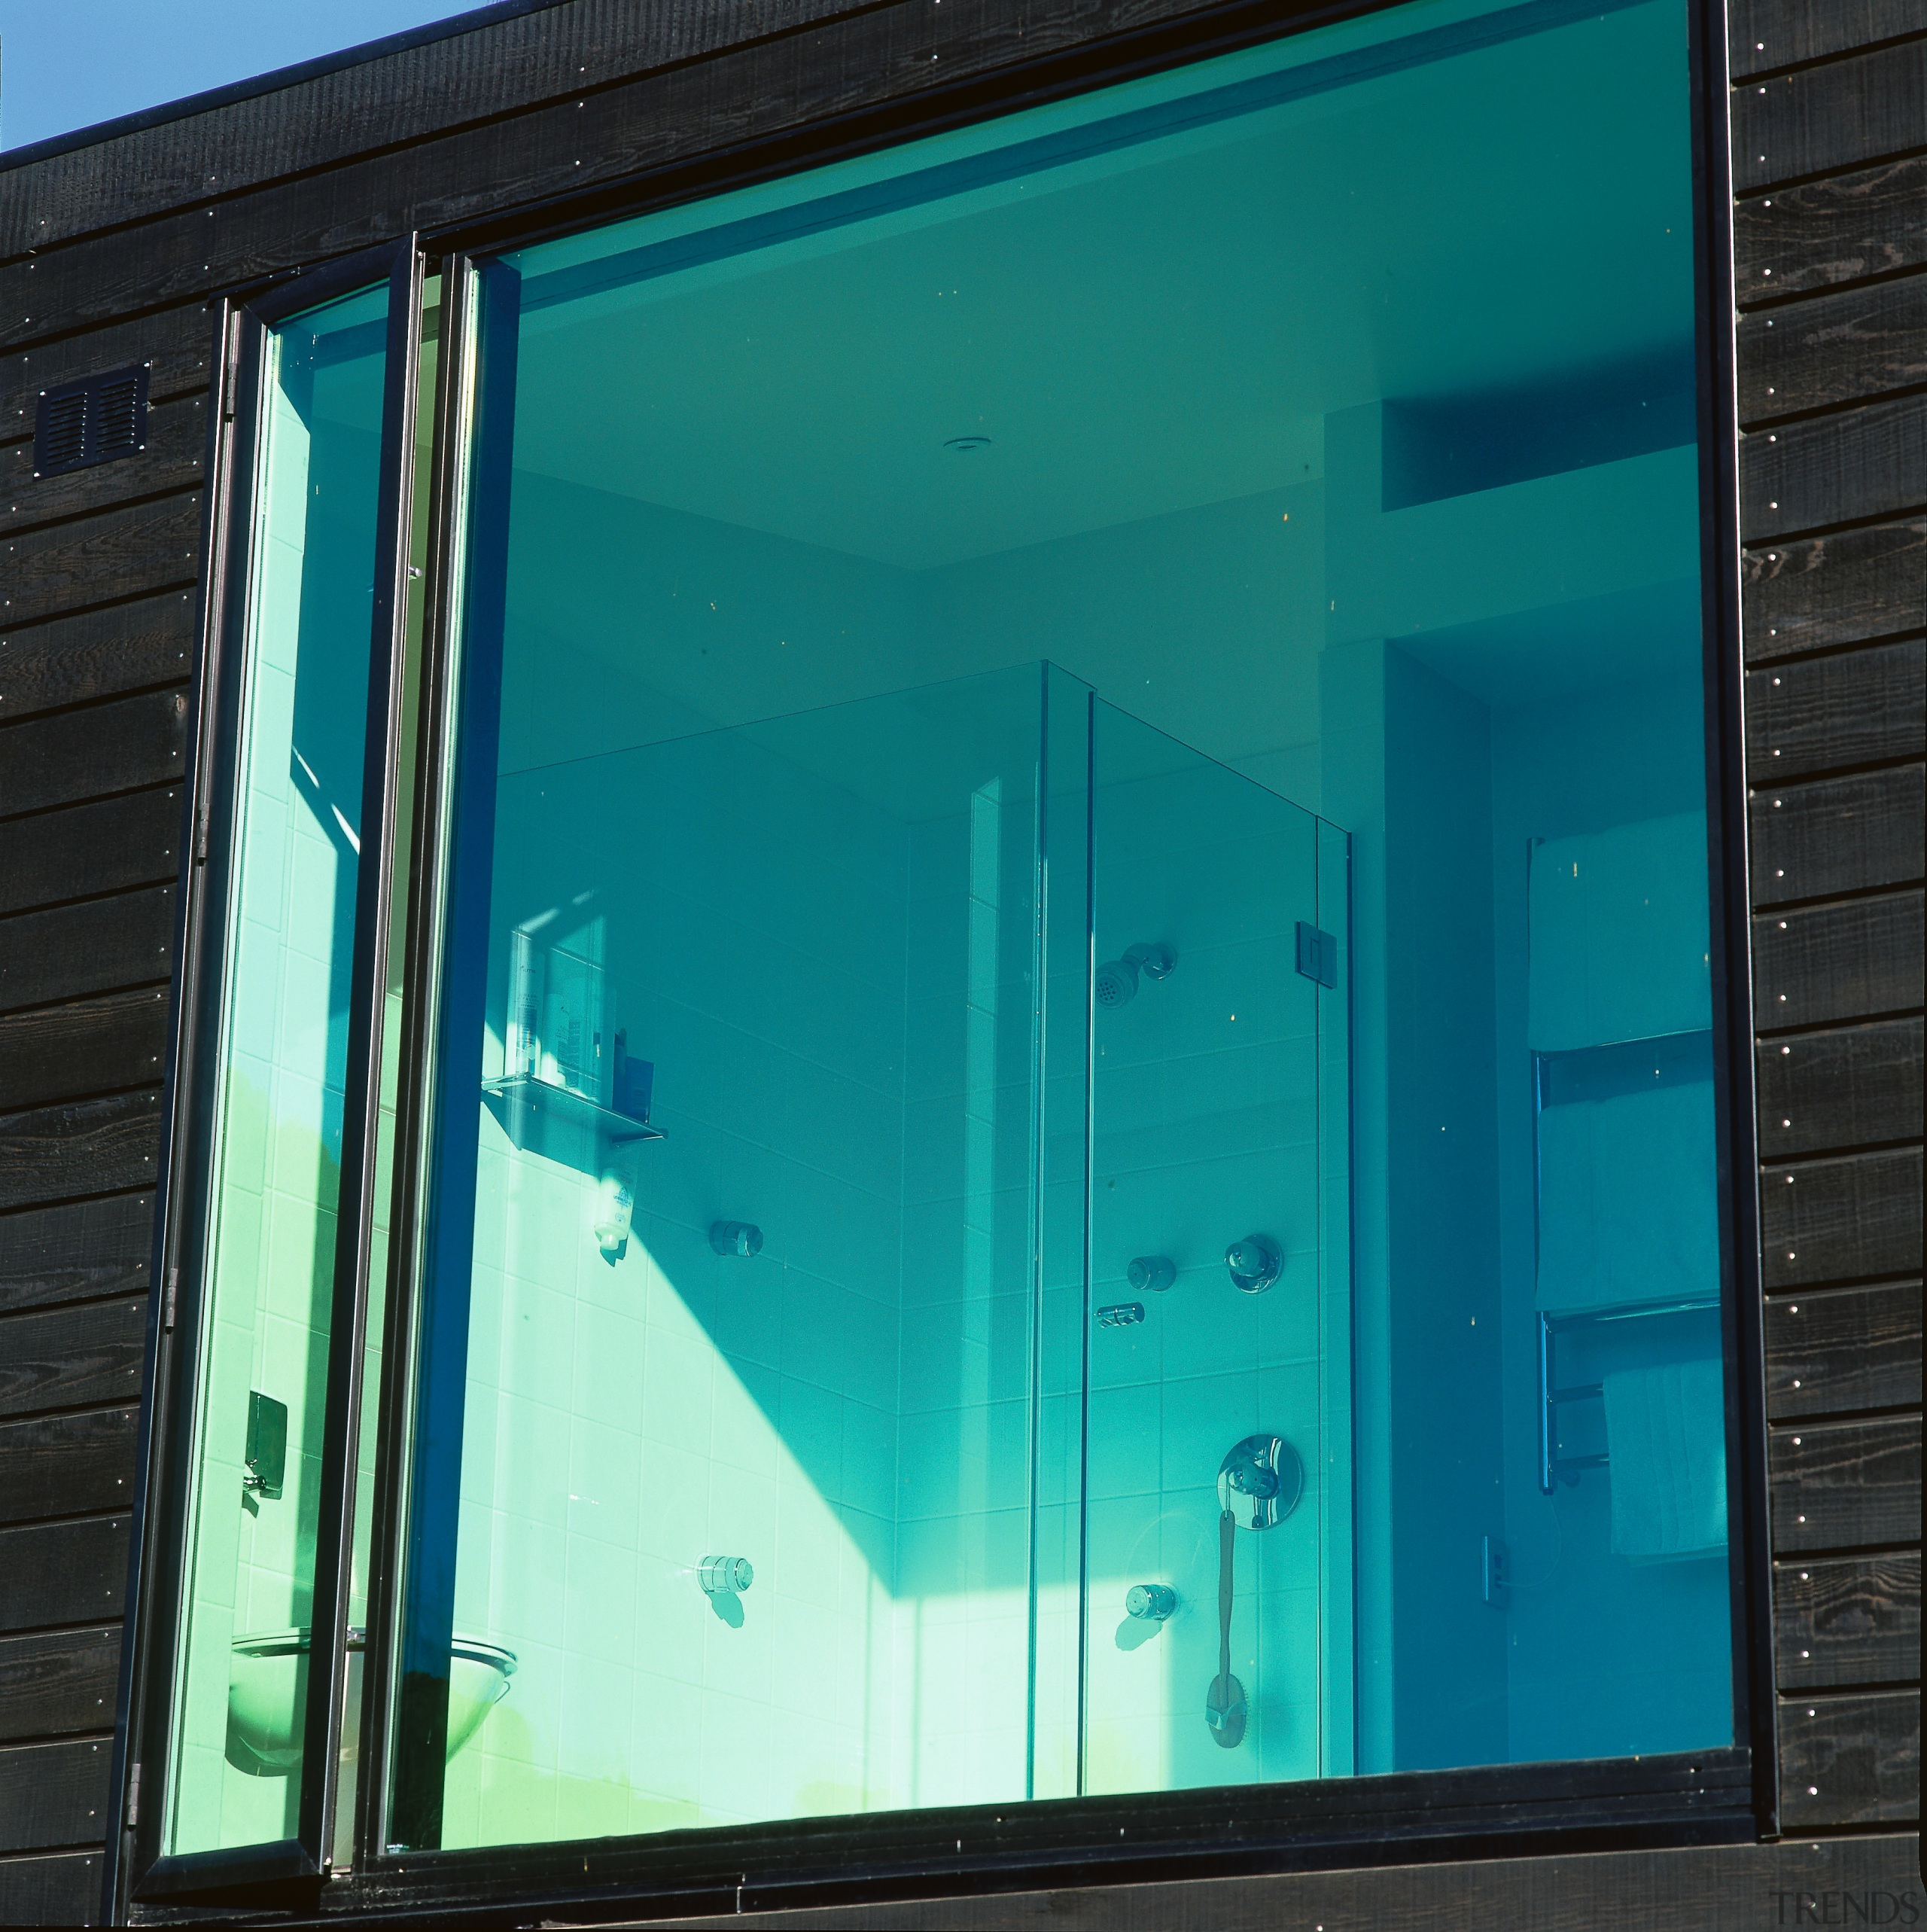 View of a window - View of a architecture, blue, daylighting, door, facade, glass, house, window, teal, black